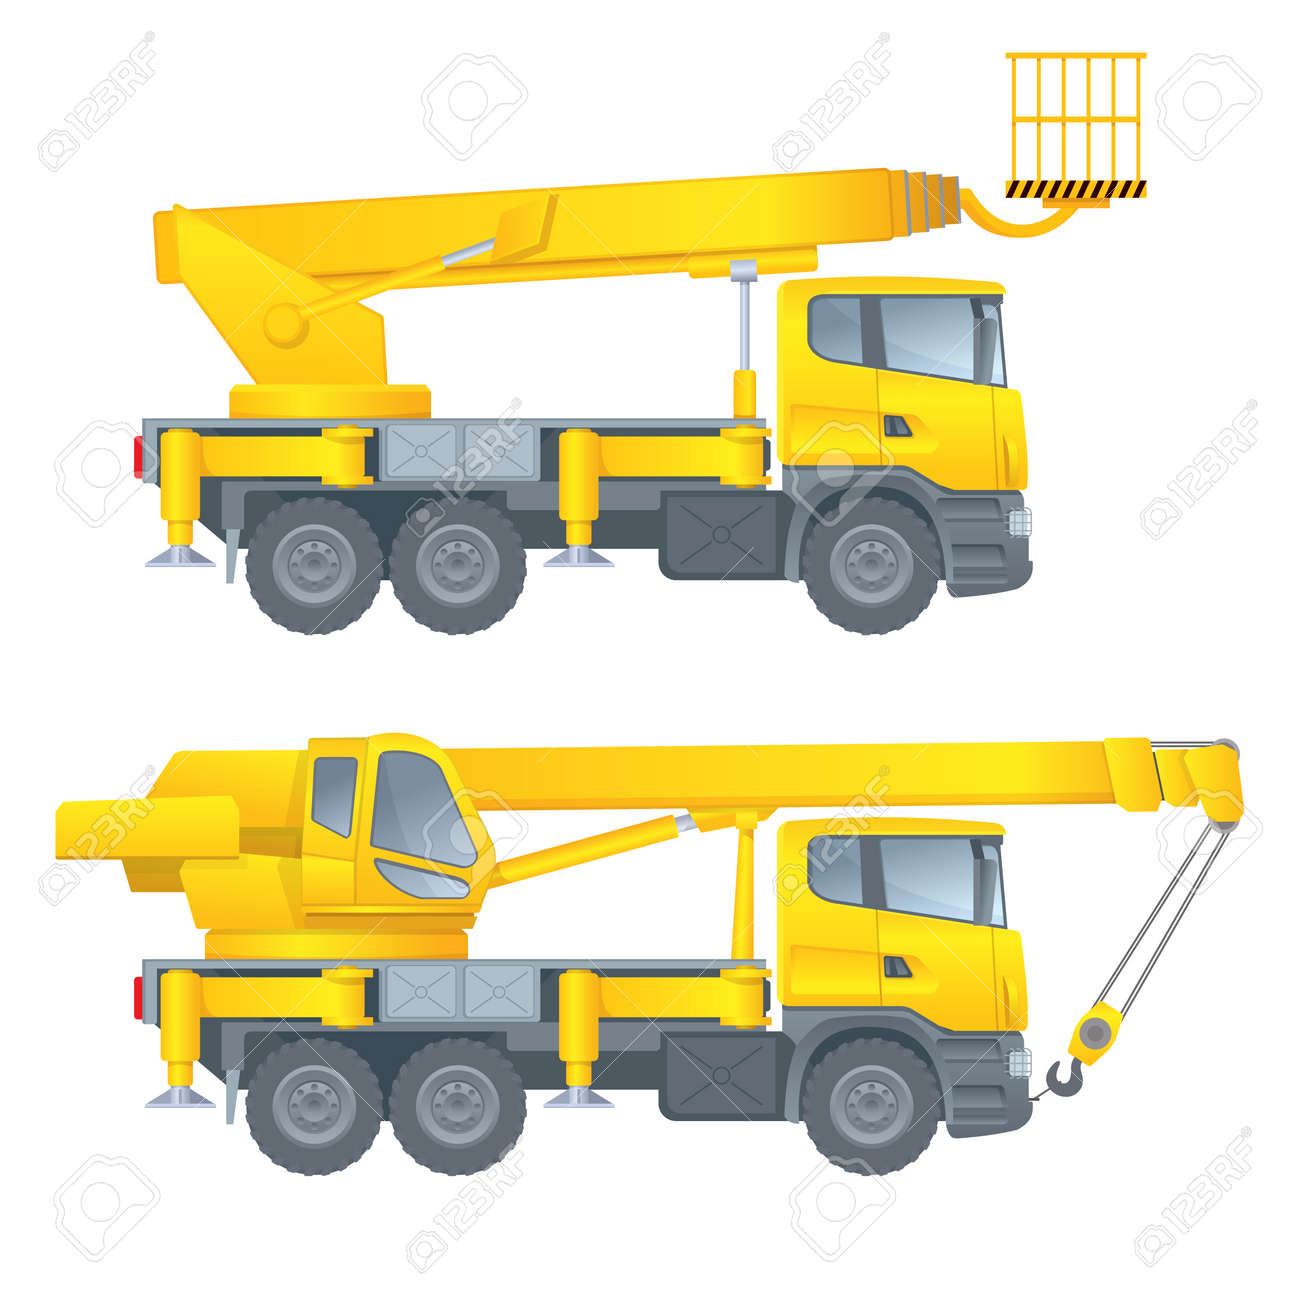 Construction Machinery Truck Crane Car Cradle Aerial Platform Vector Illustration White